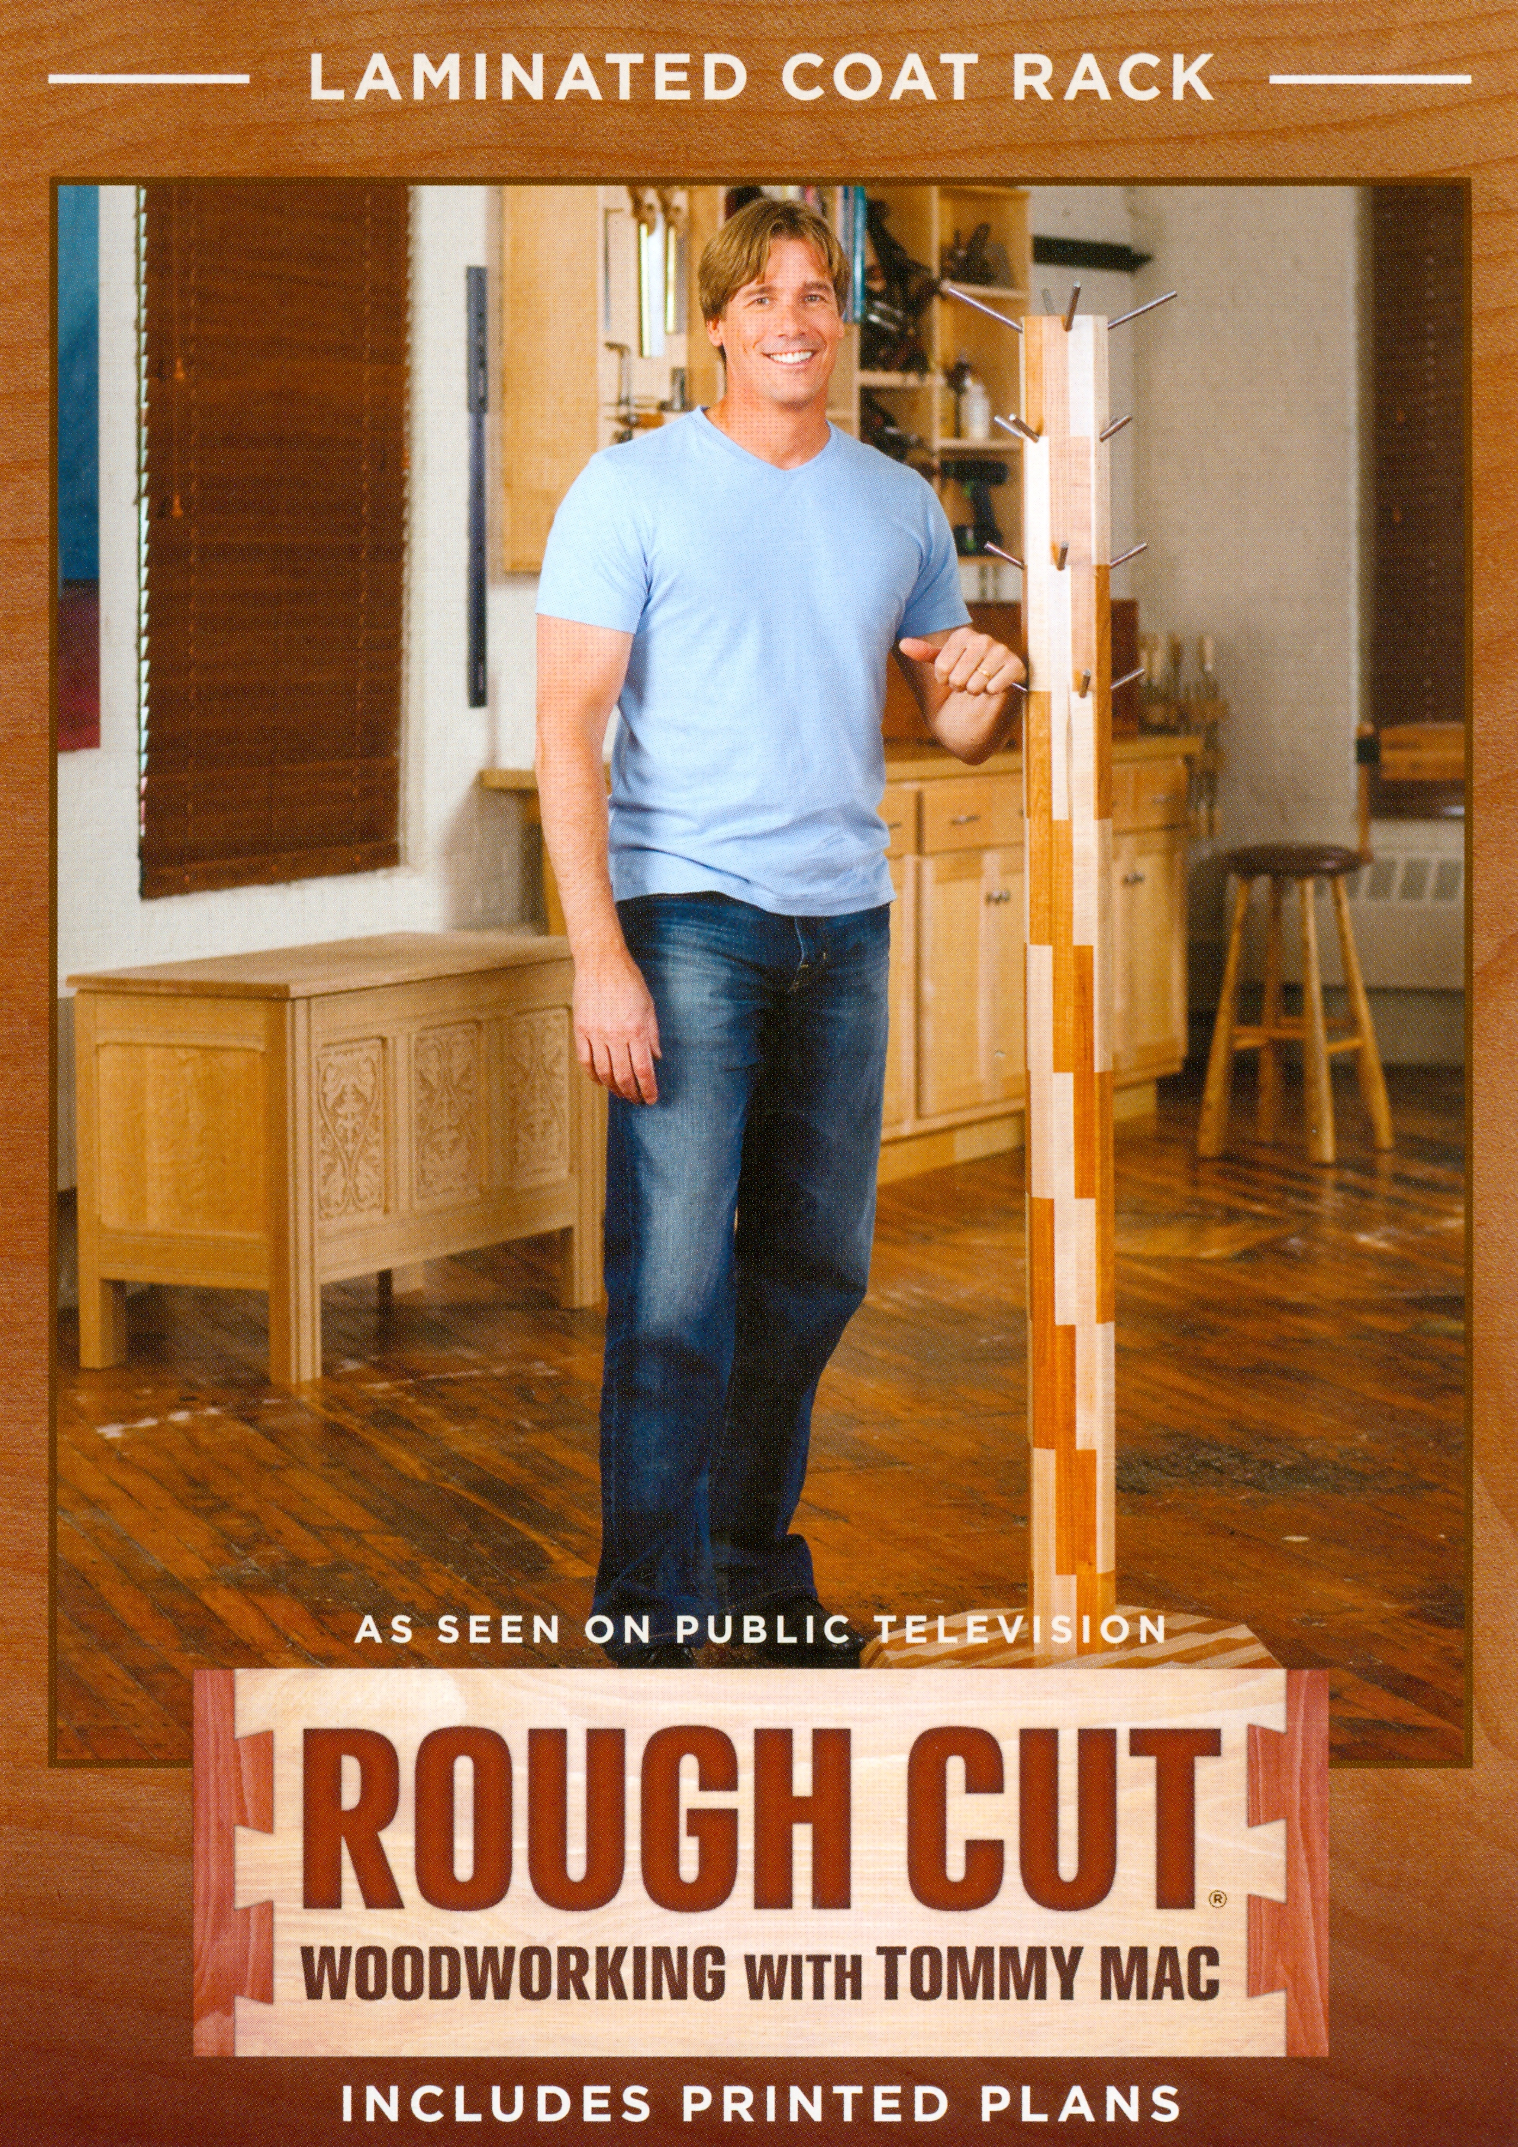 Rough Cut - Woodworking with Tommy Mac: Laminated Coat Rack